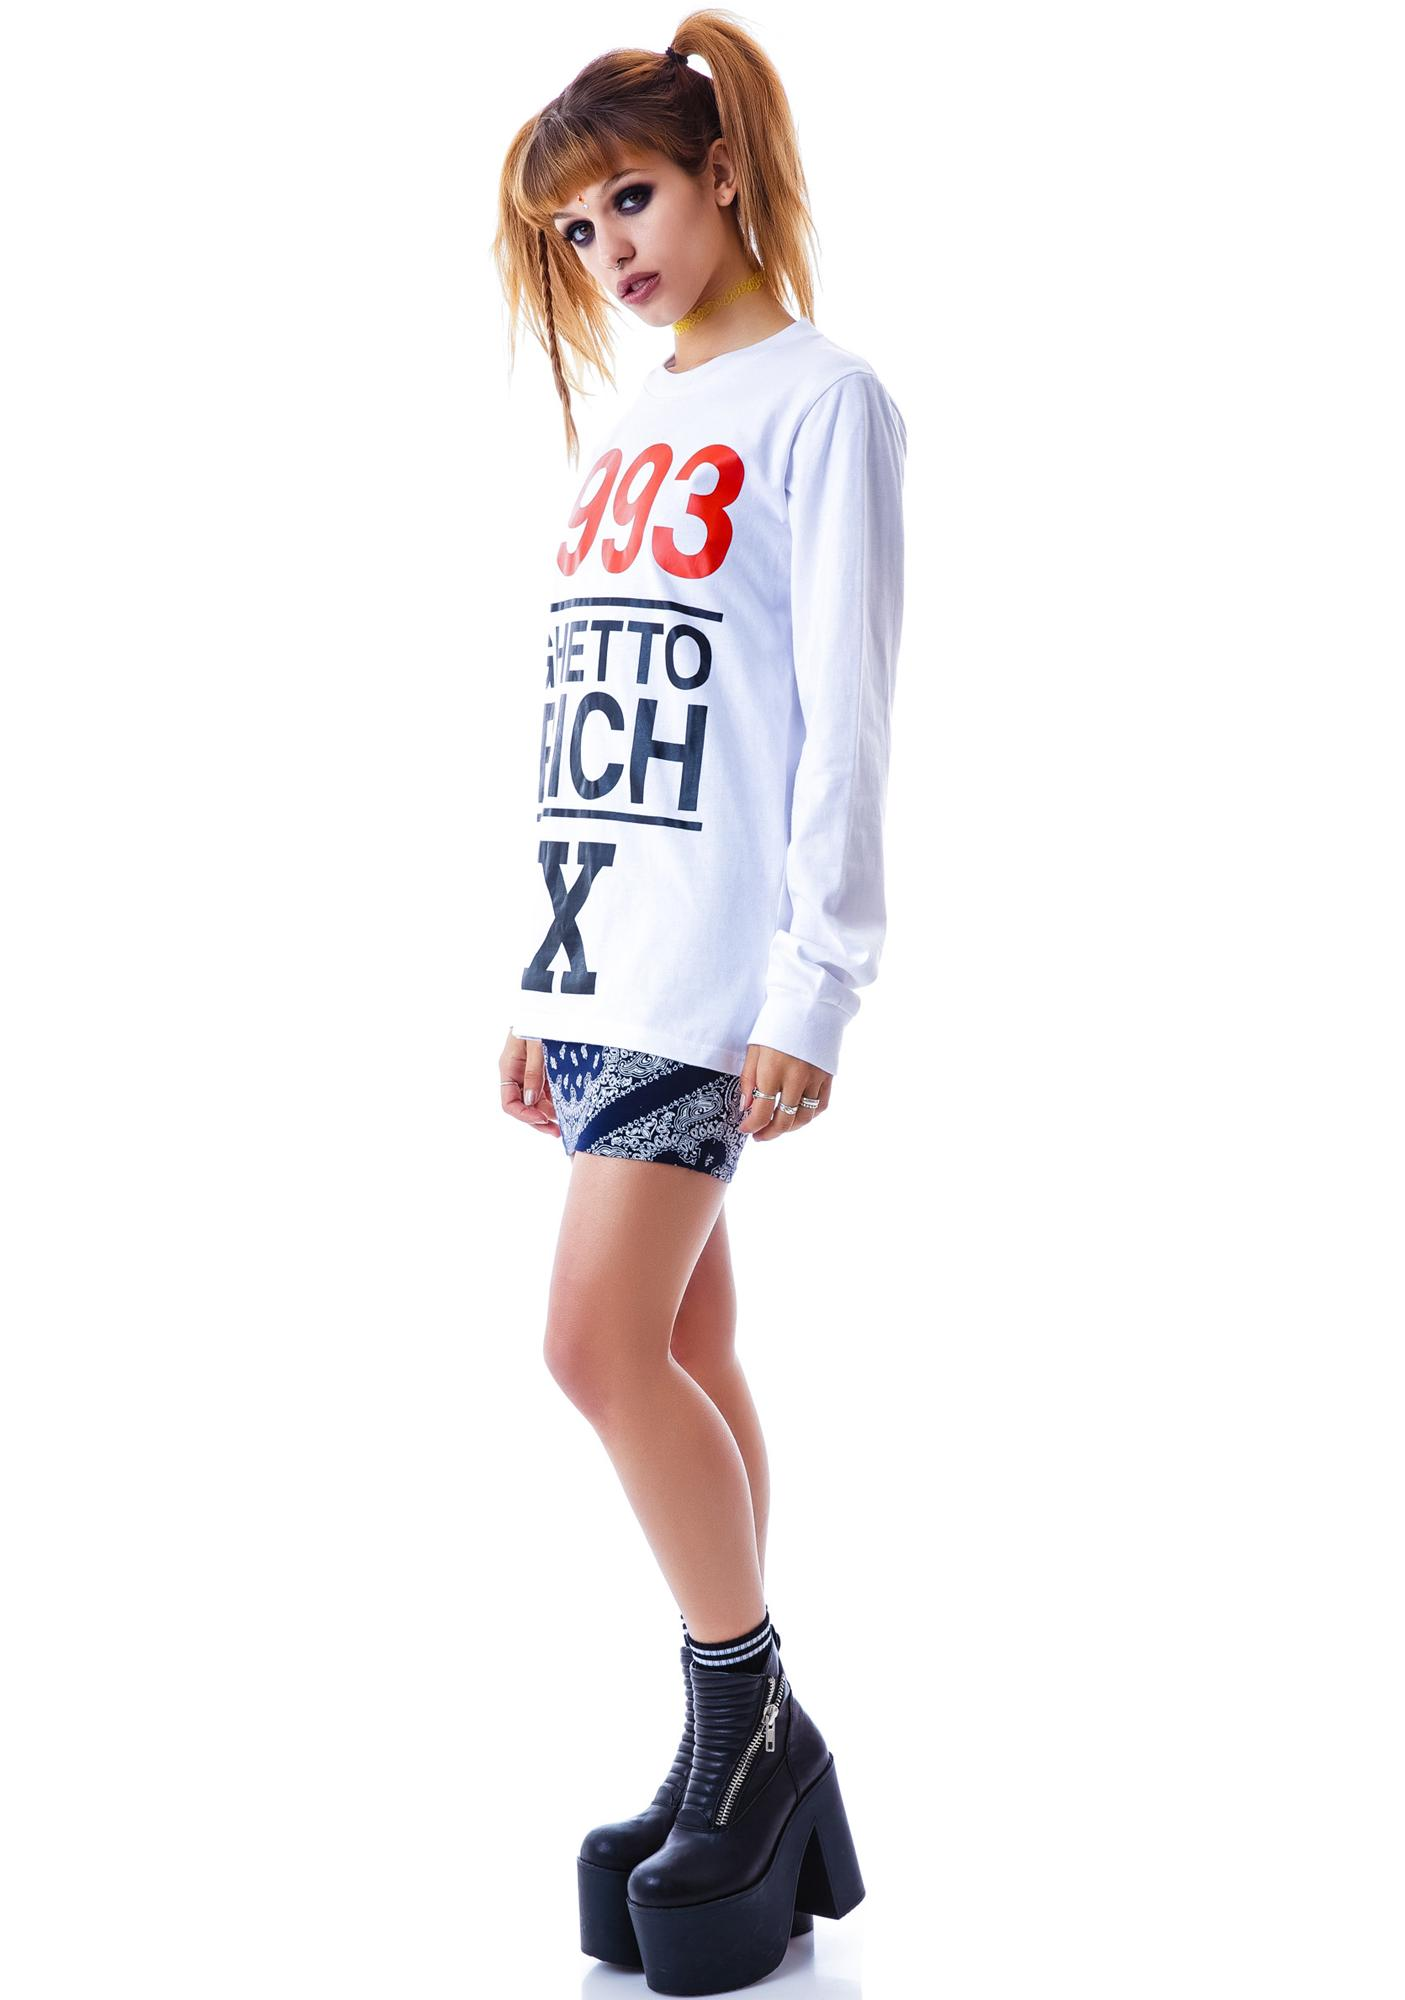 Joyrich 1993 Ghetto Rich x Long Sleeve Tee